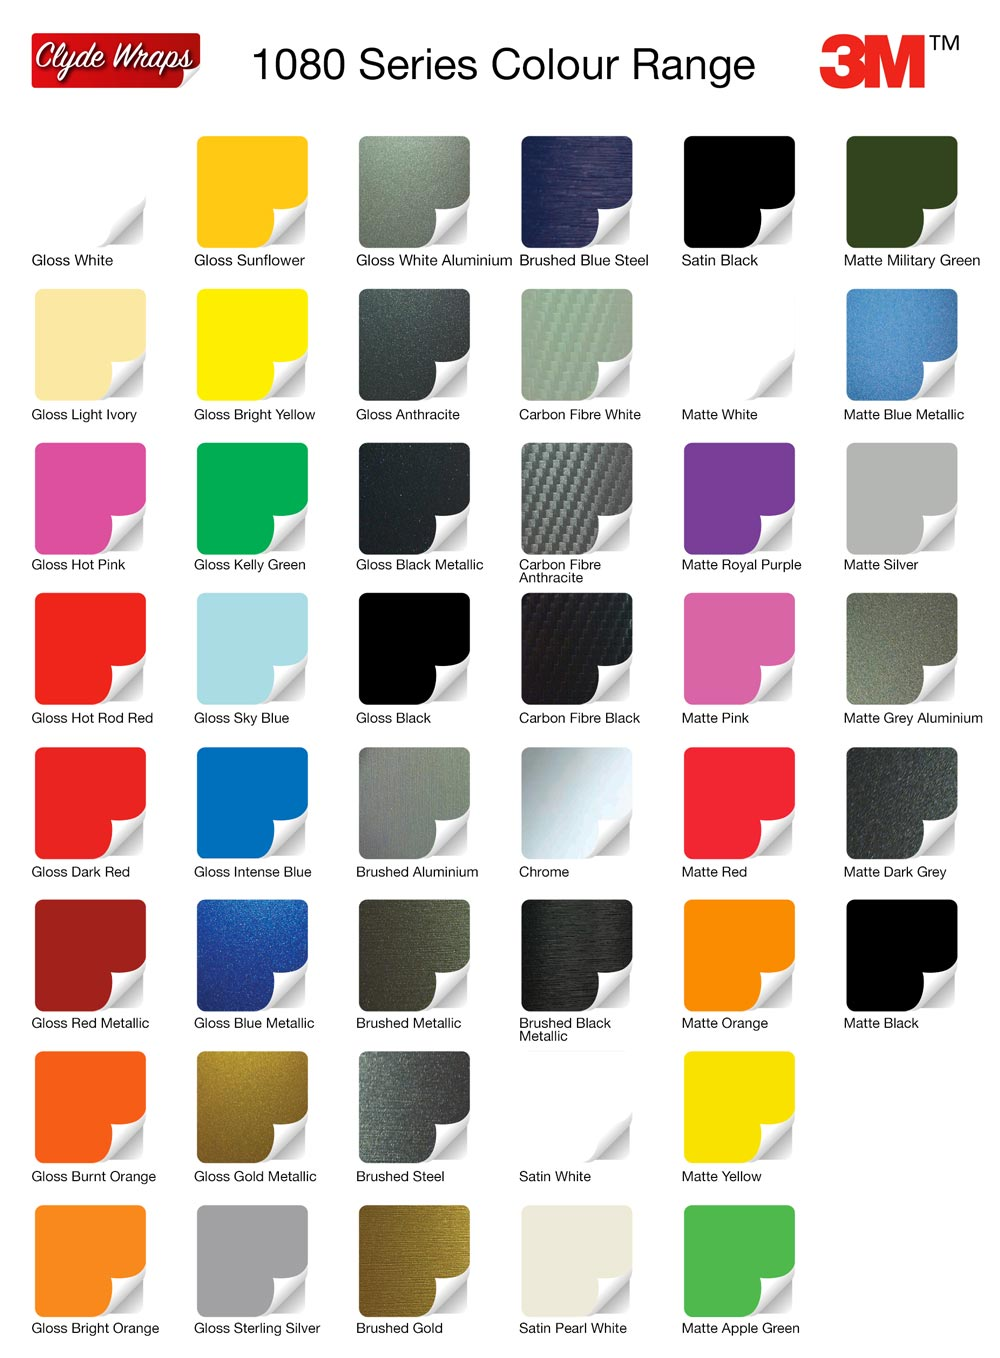 Colour change vinyl wraps clyde wraps 3m colour chart geenschuldenfo Image collections